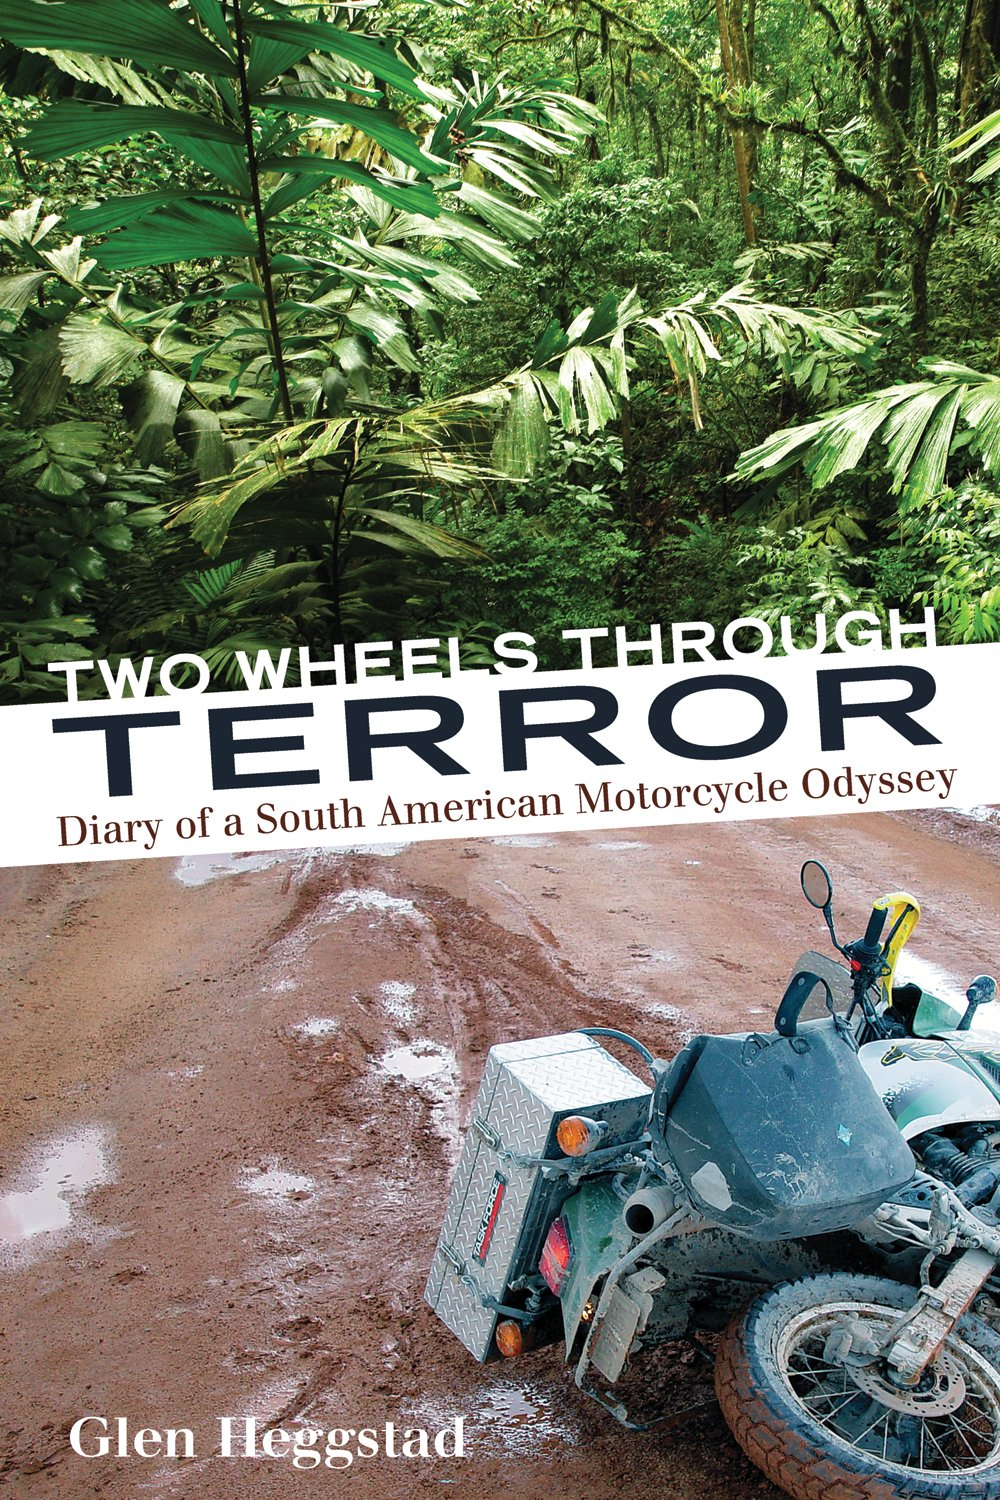 Two Wheels Through Terror: Diary of a South American Motorcycle Odyssey PDF Text fb2 book